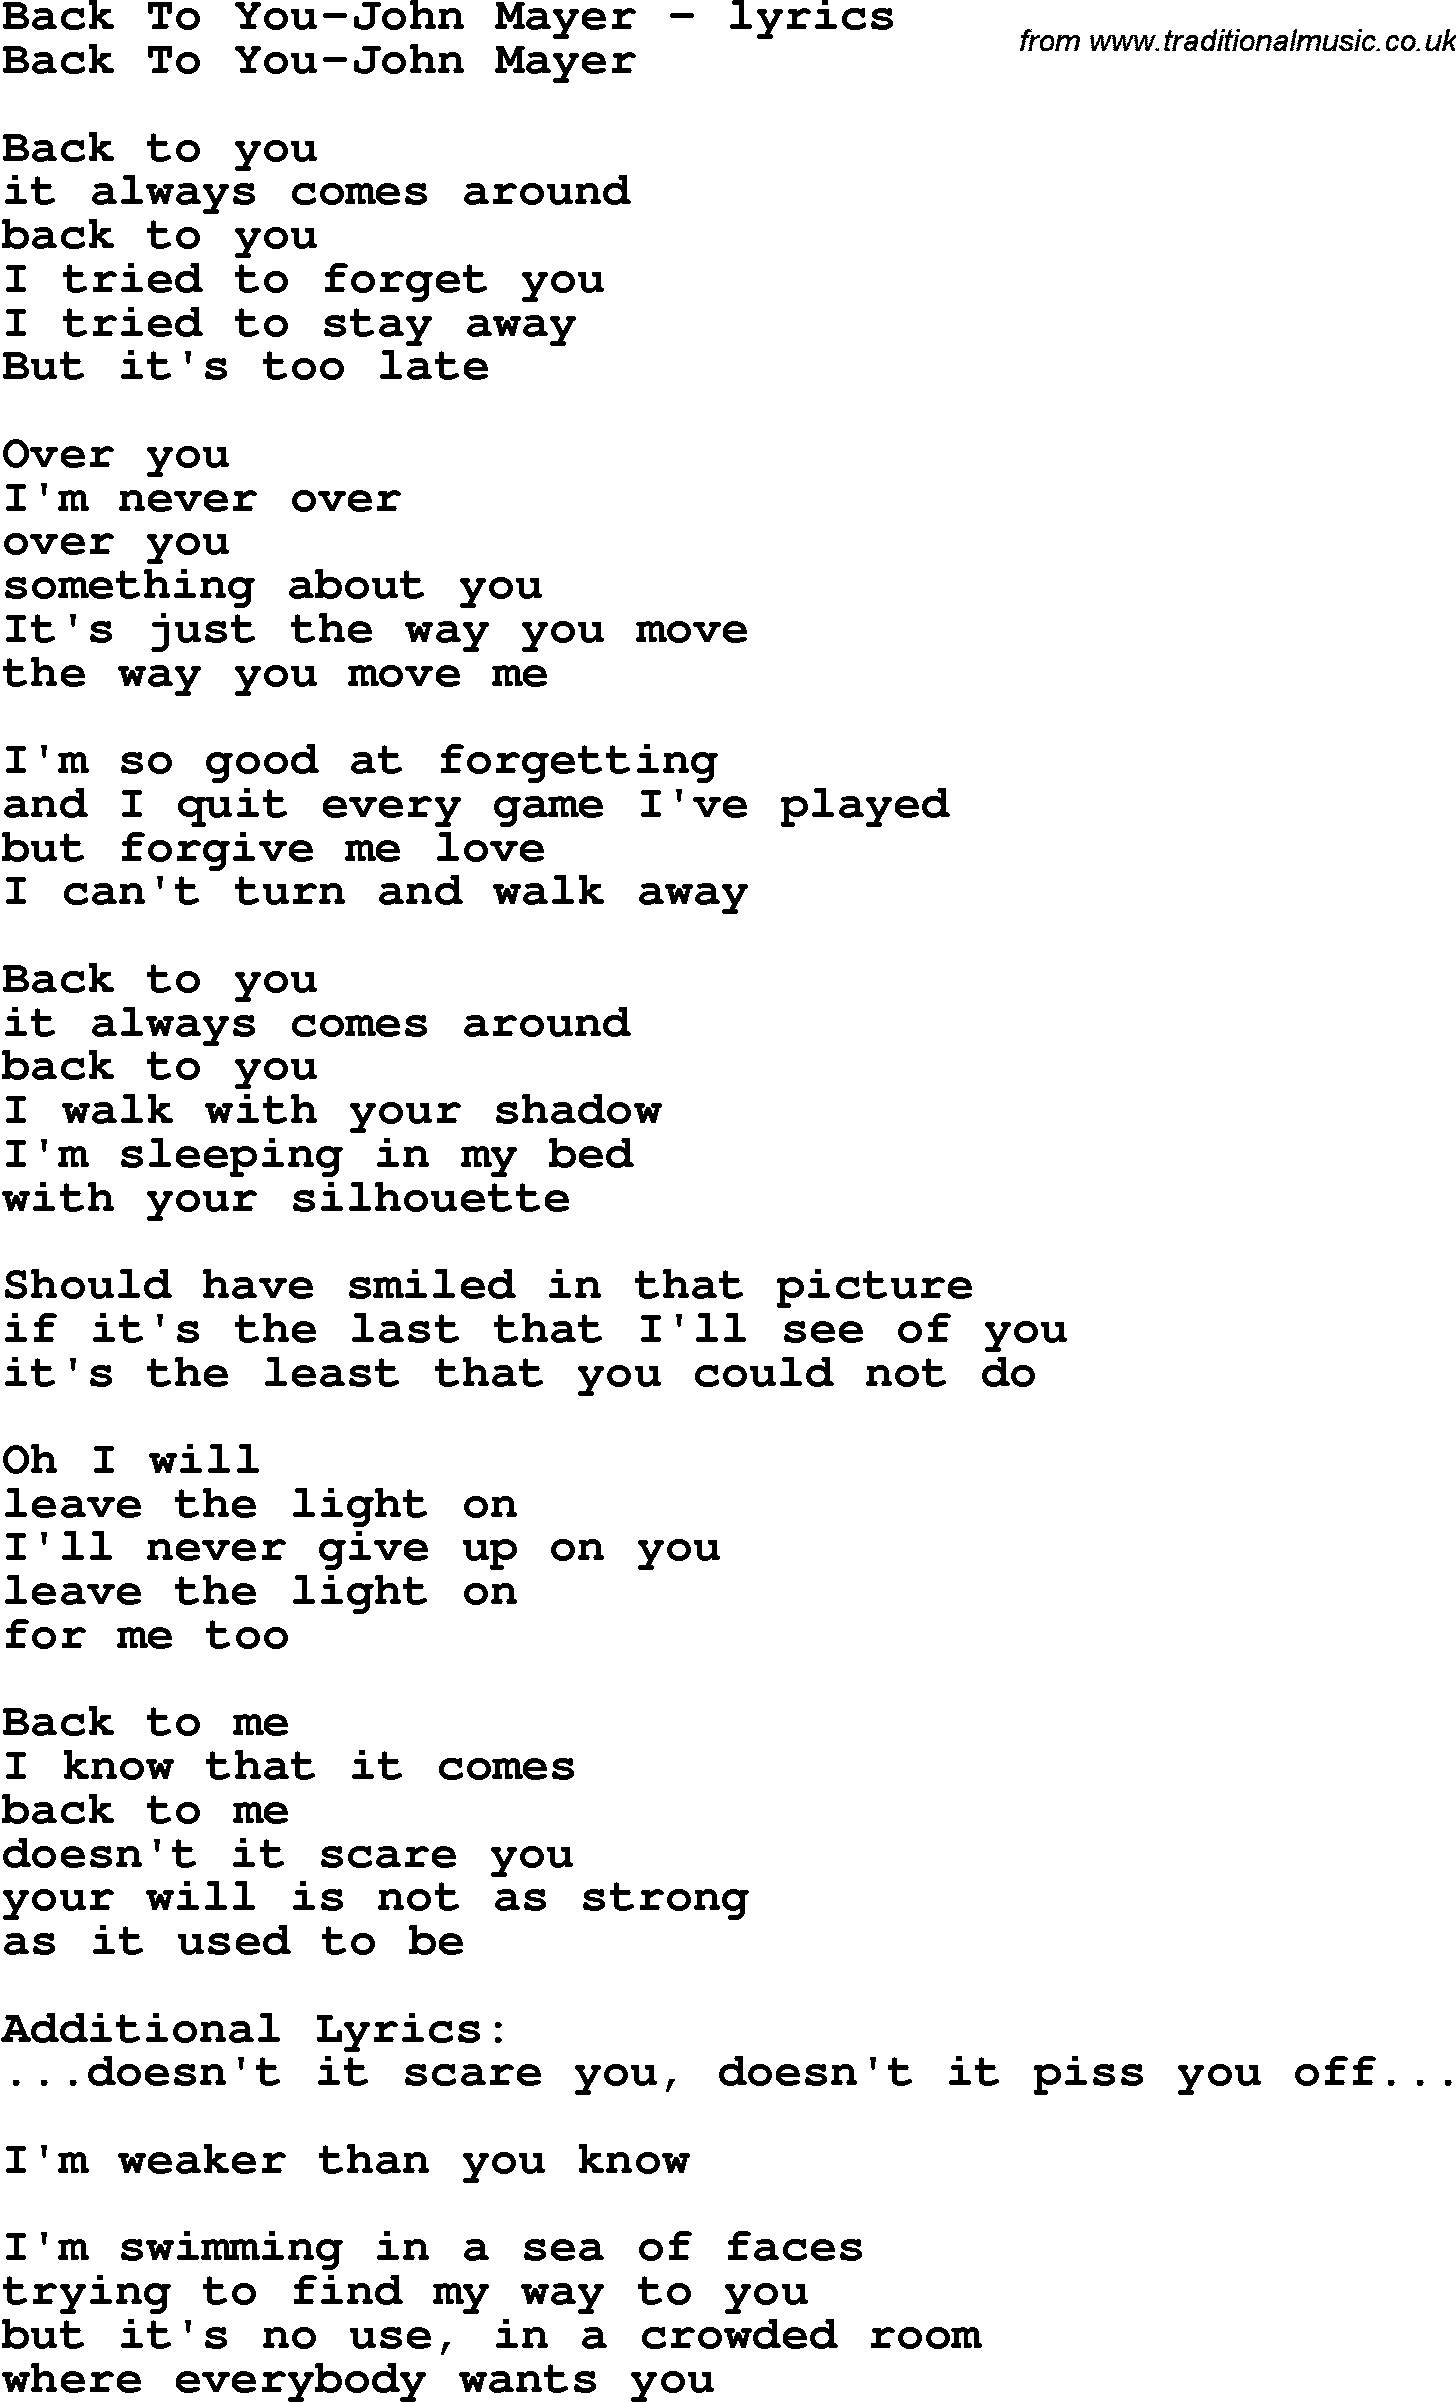 Love Song Lyrics For Back To You John Mayer